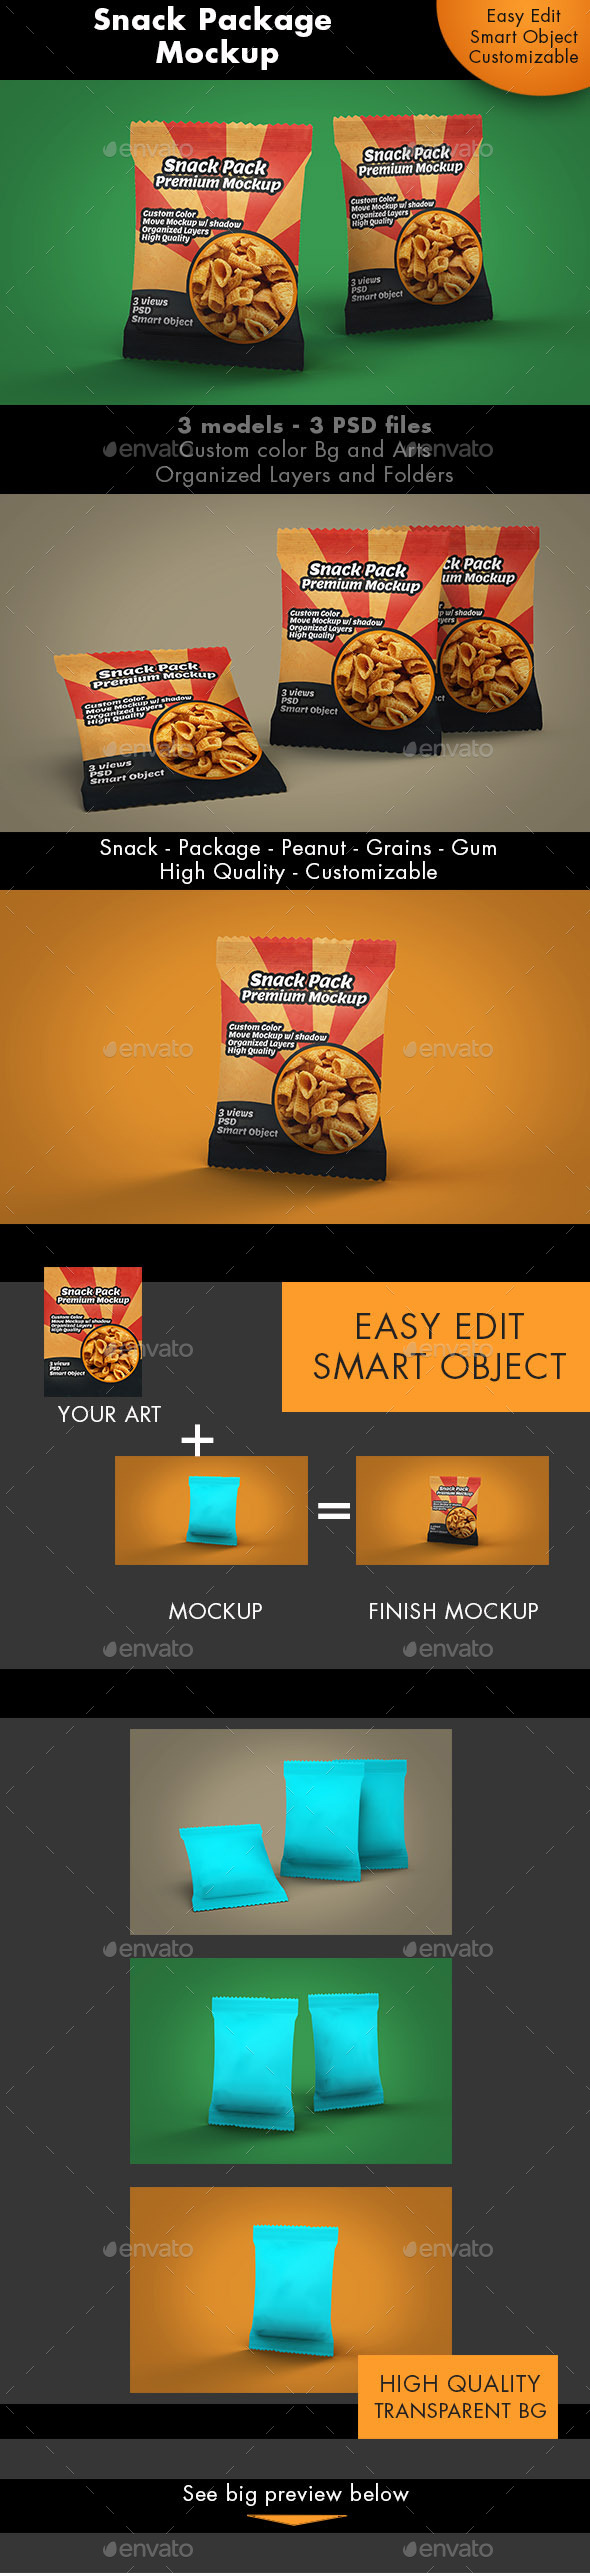 Snack Package Mockup Premium